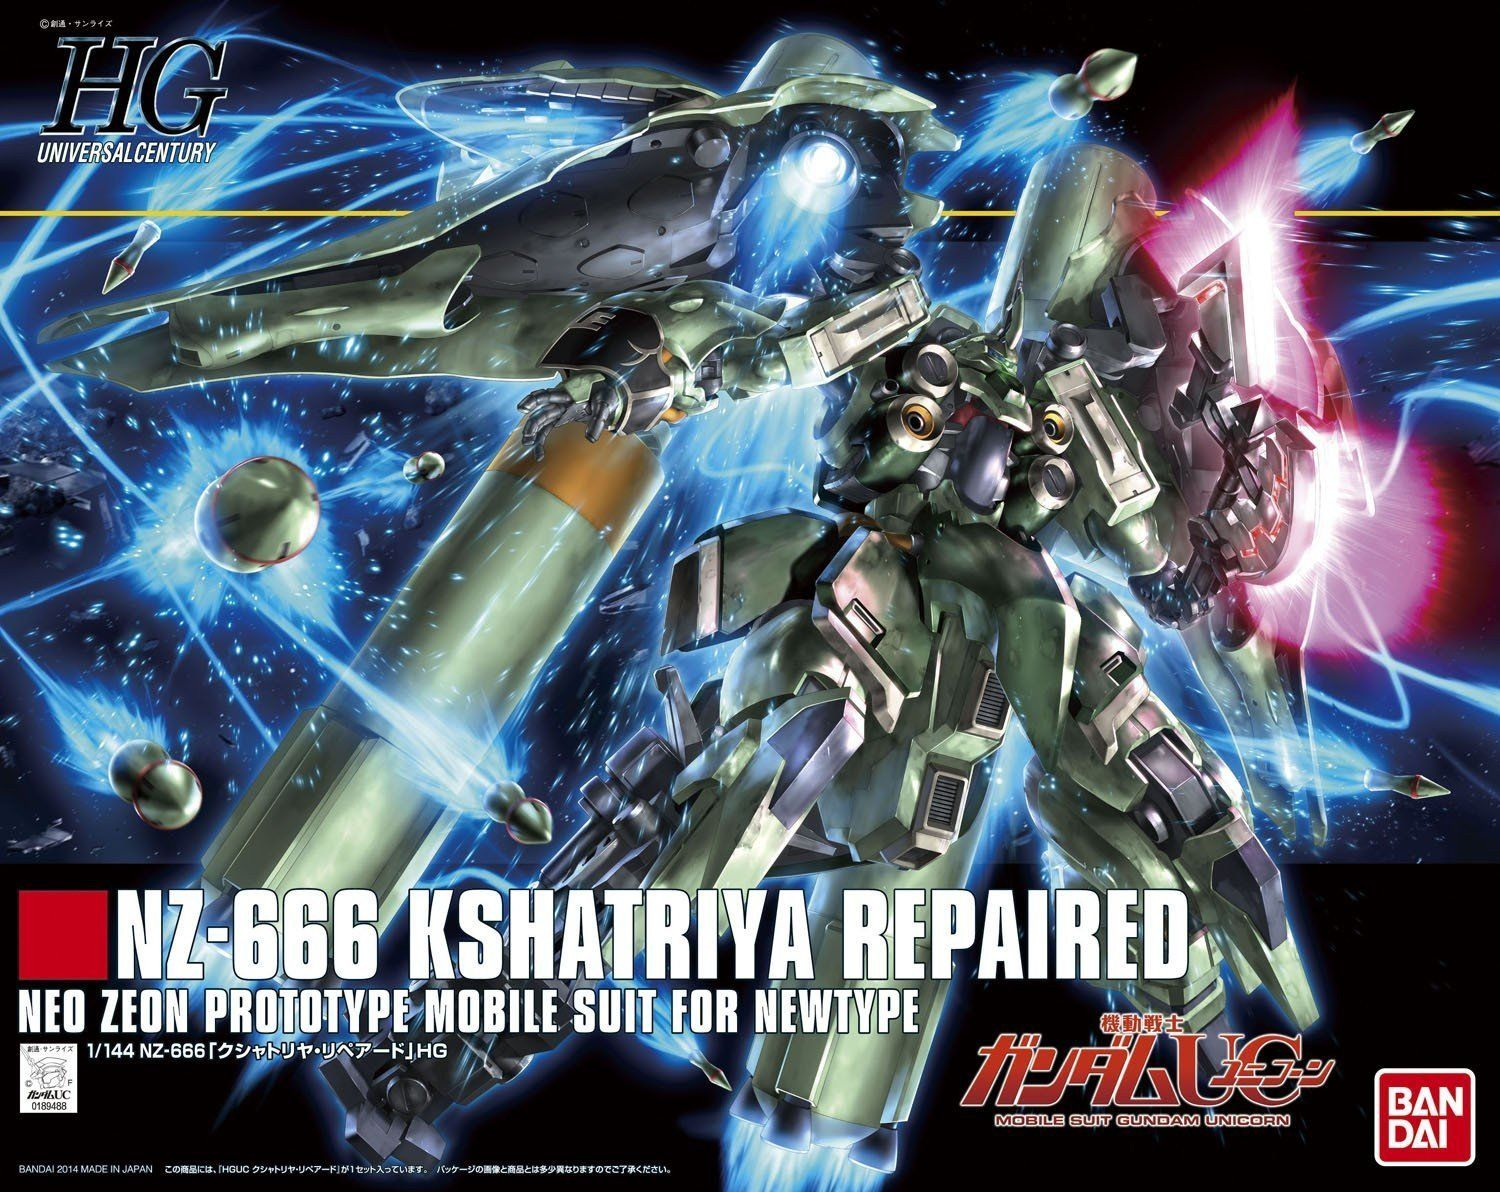 HGUC 1/144 Kshatriya Repaired